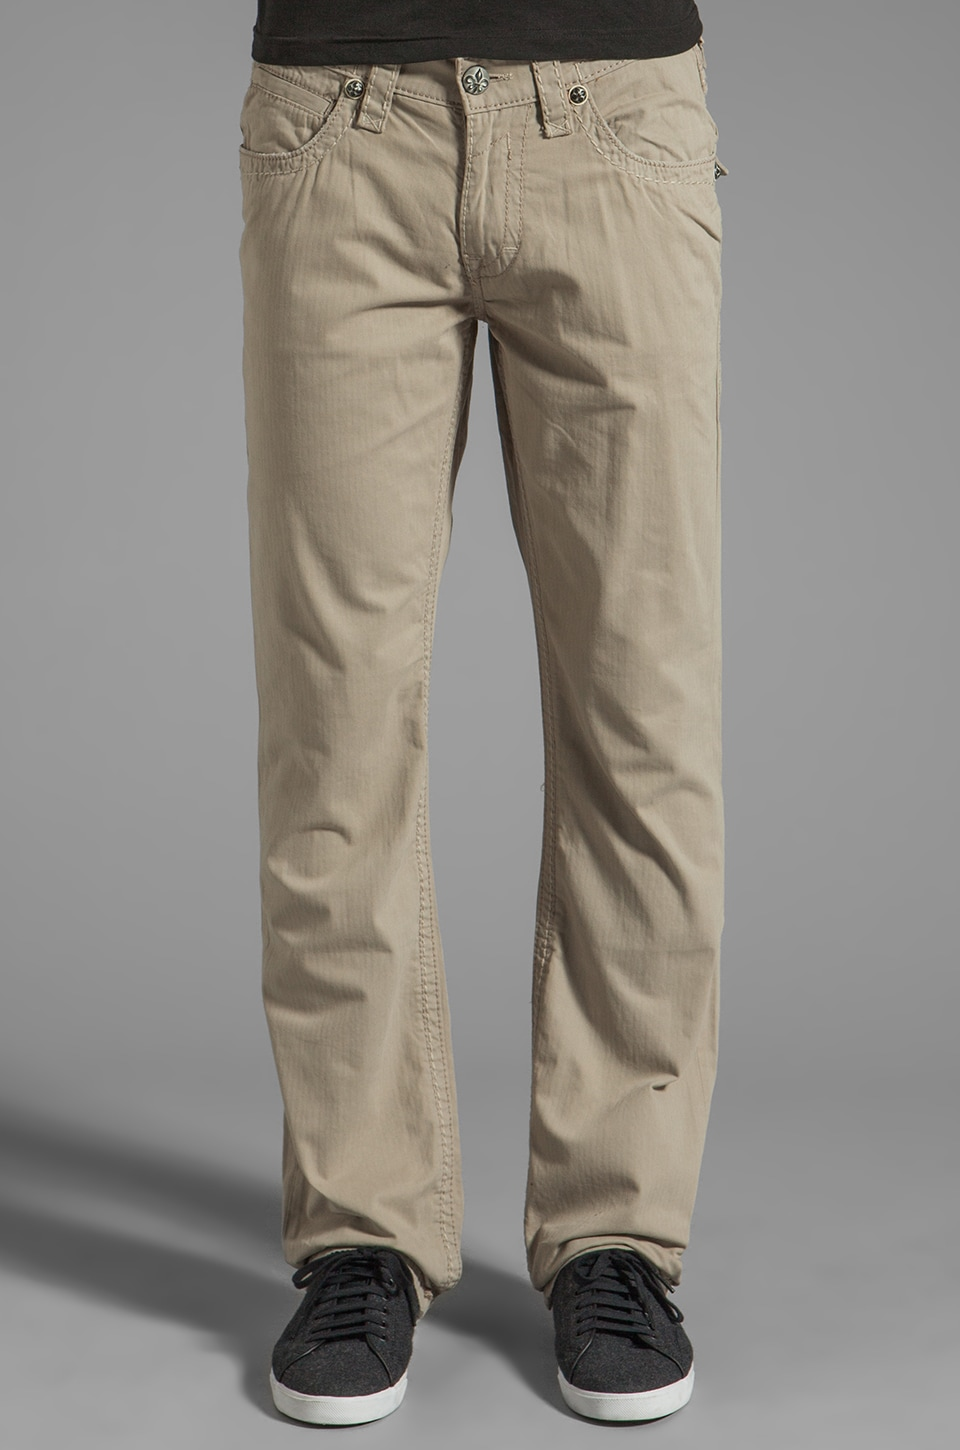 Rock Revival Twill Pant in Khaki